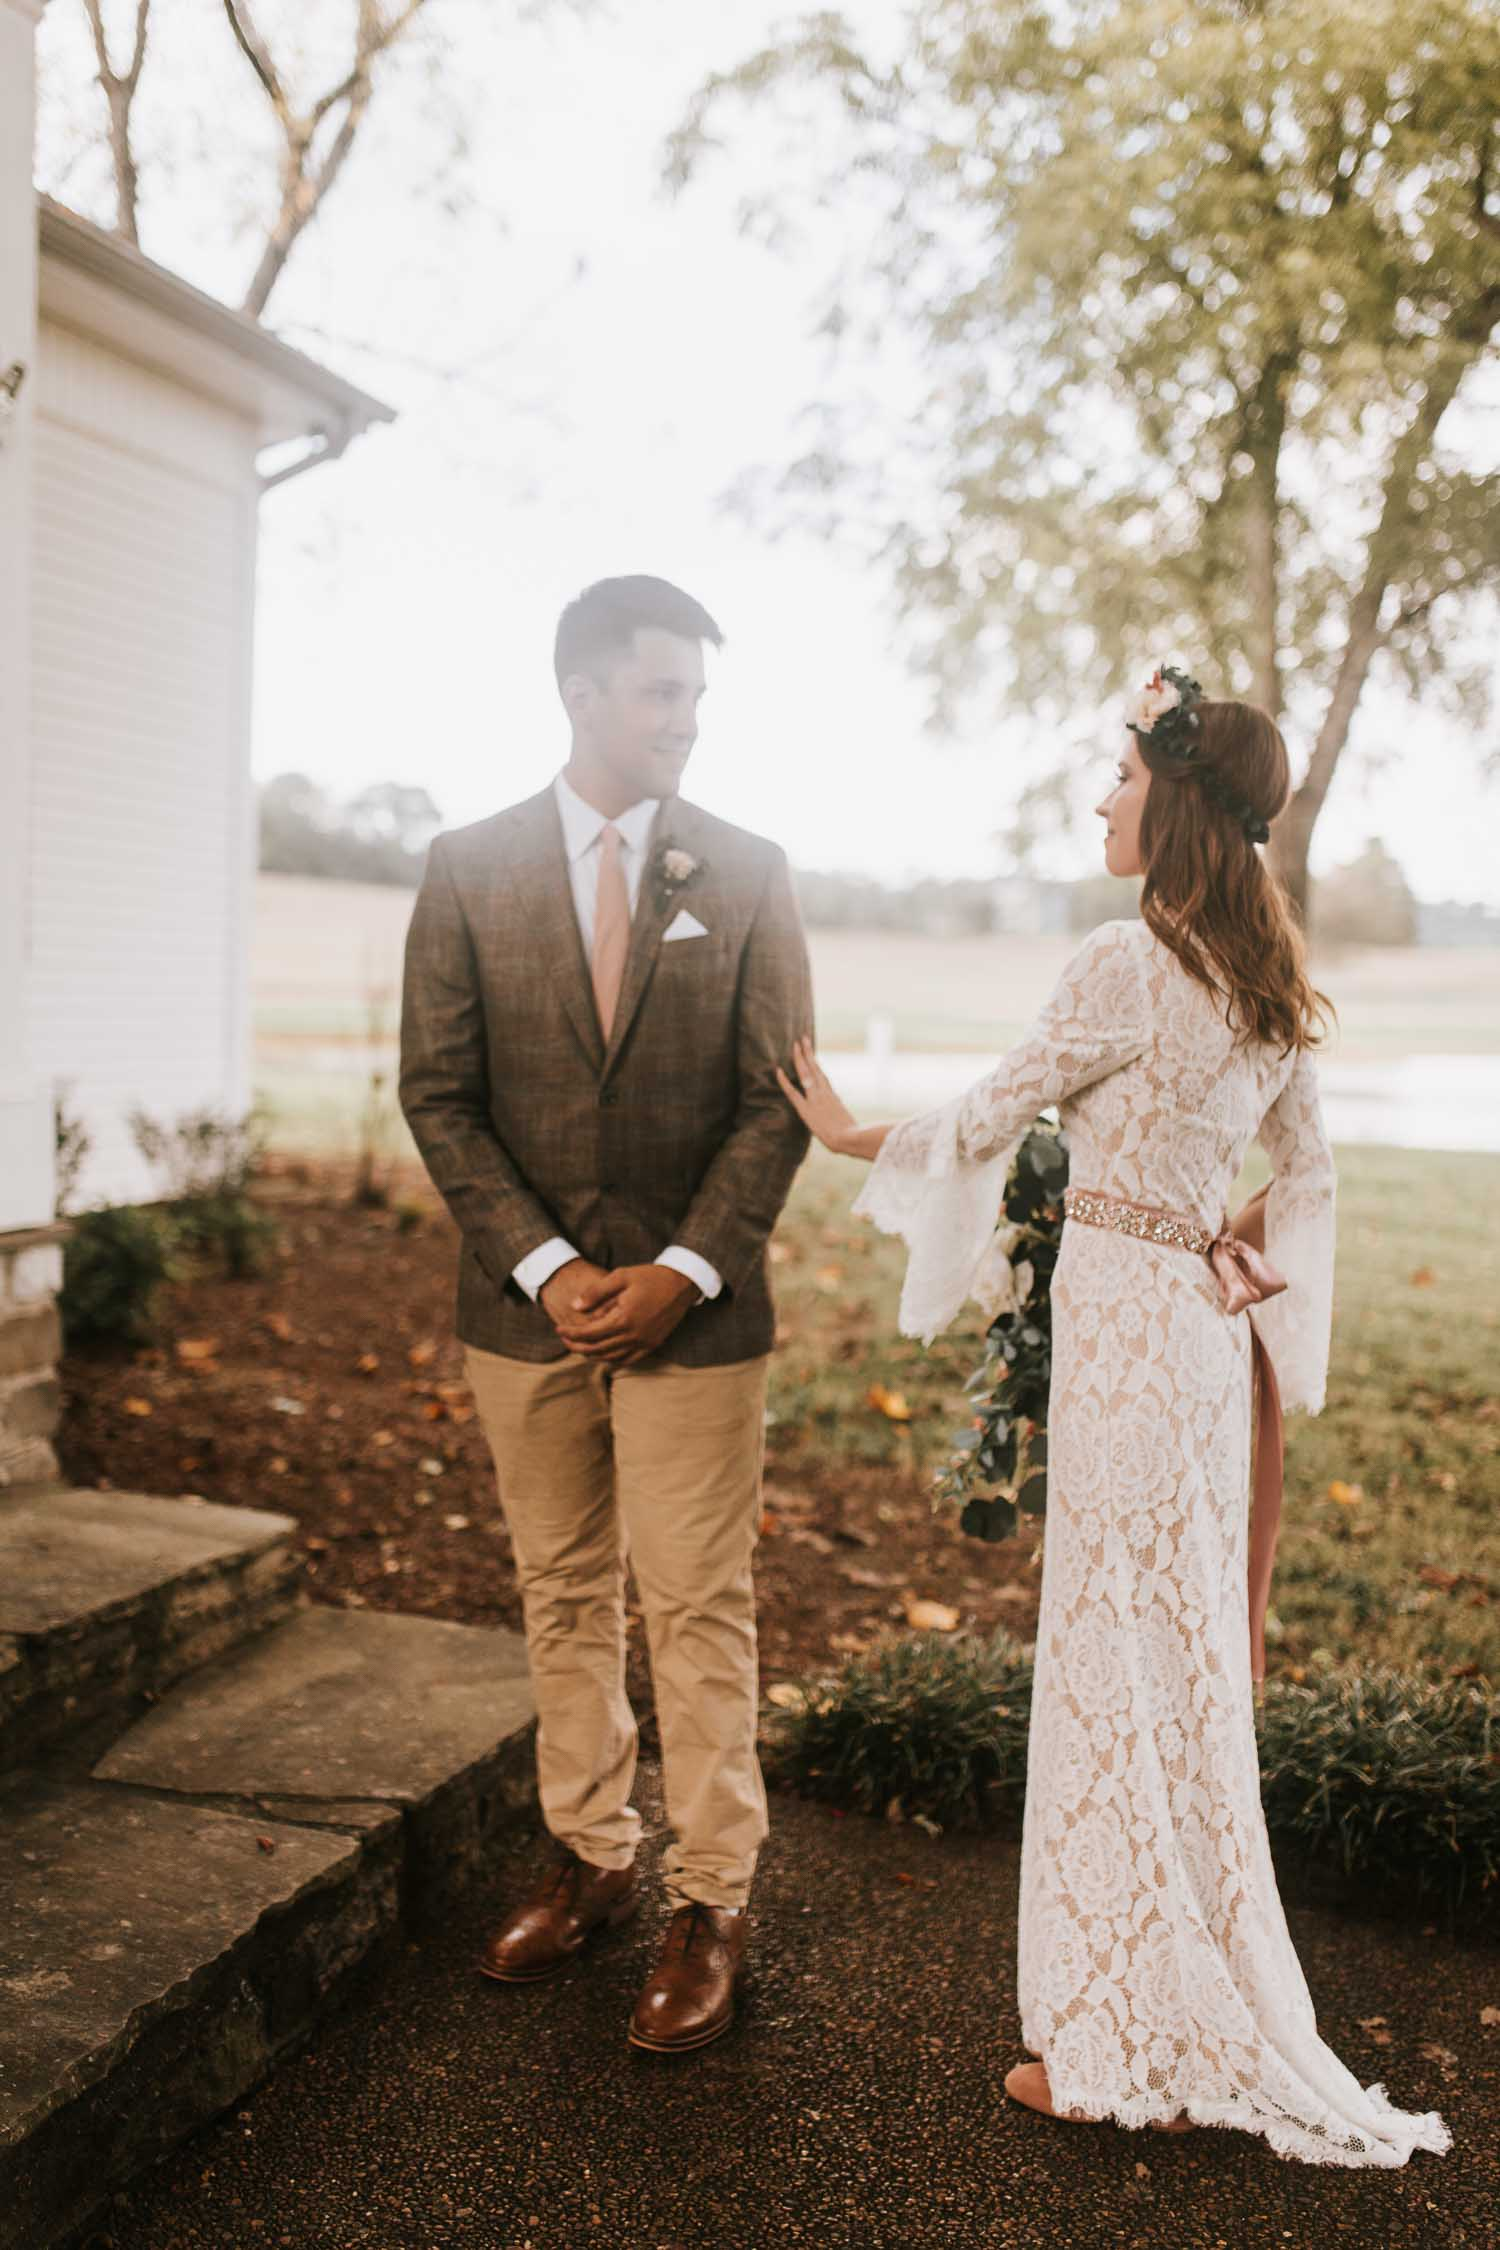 NashvilleWeddingPhotographer (5 of 44).jpg